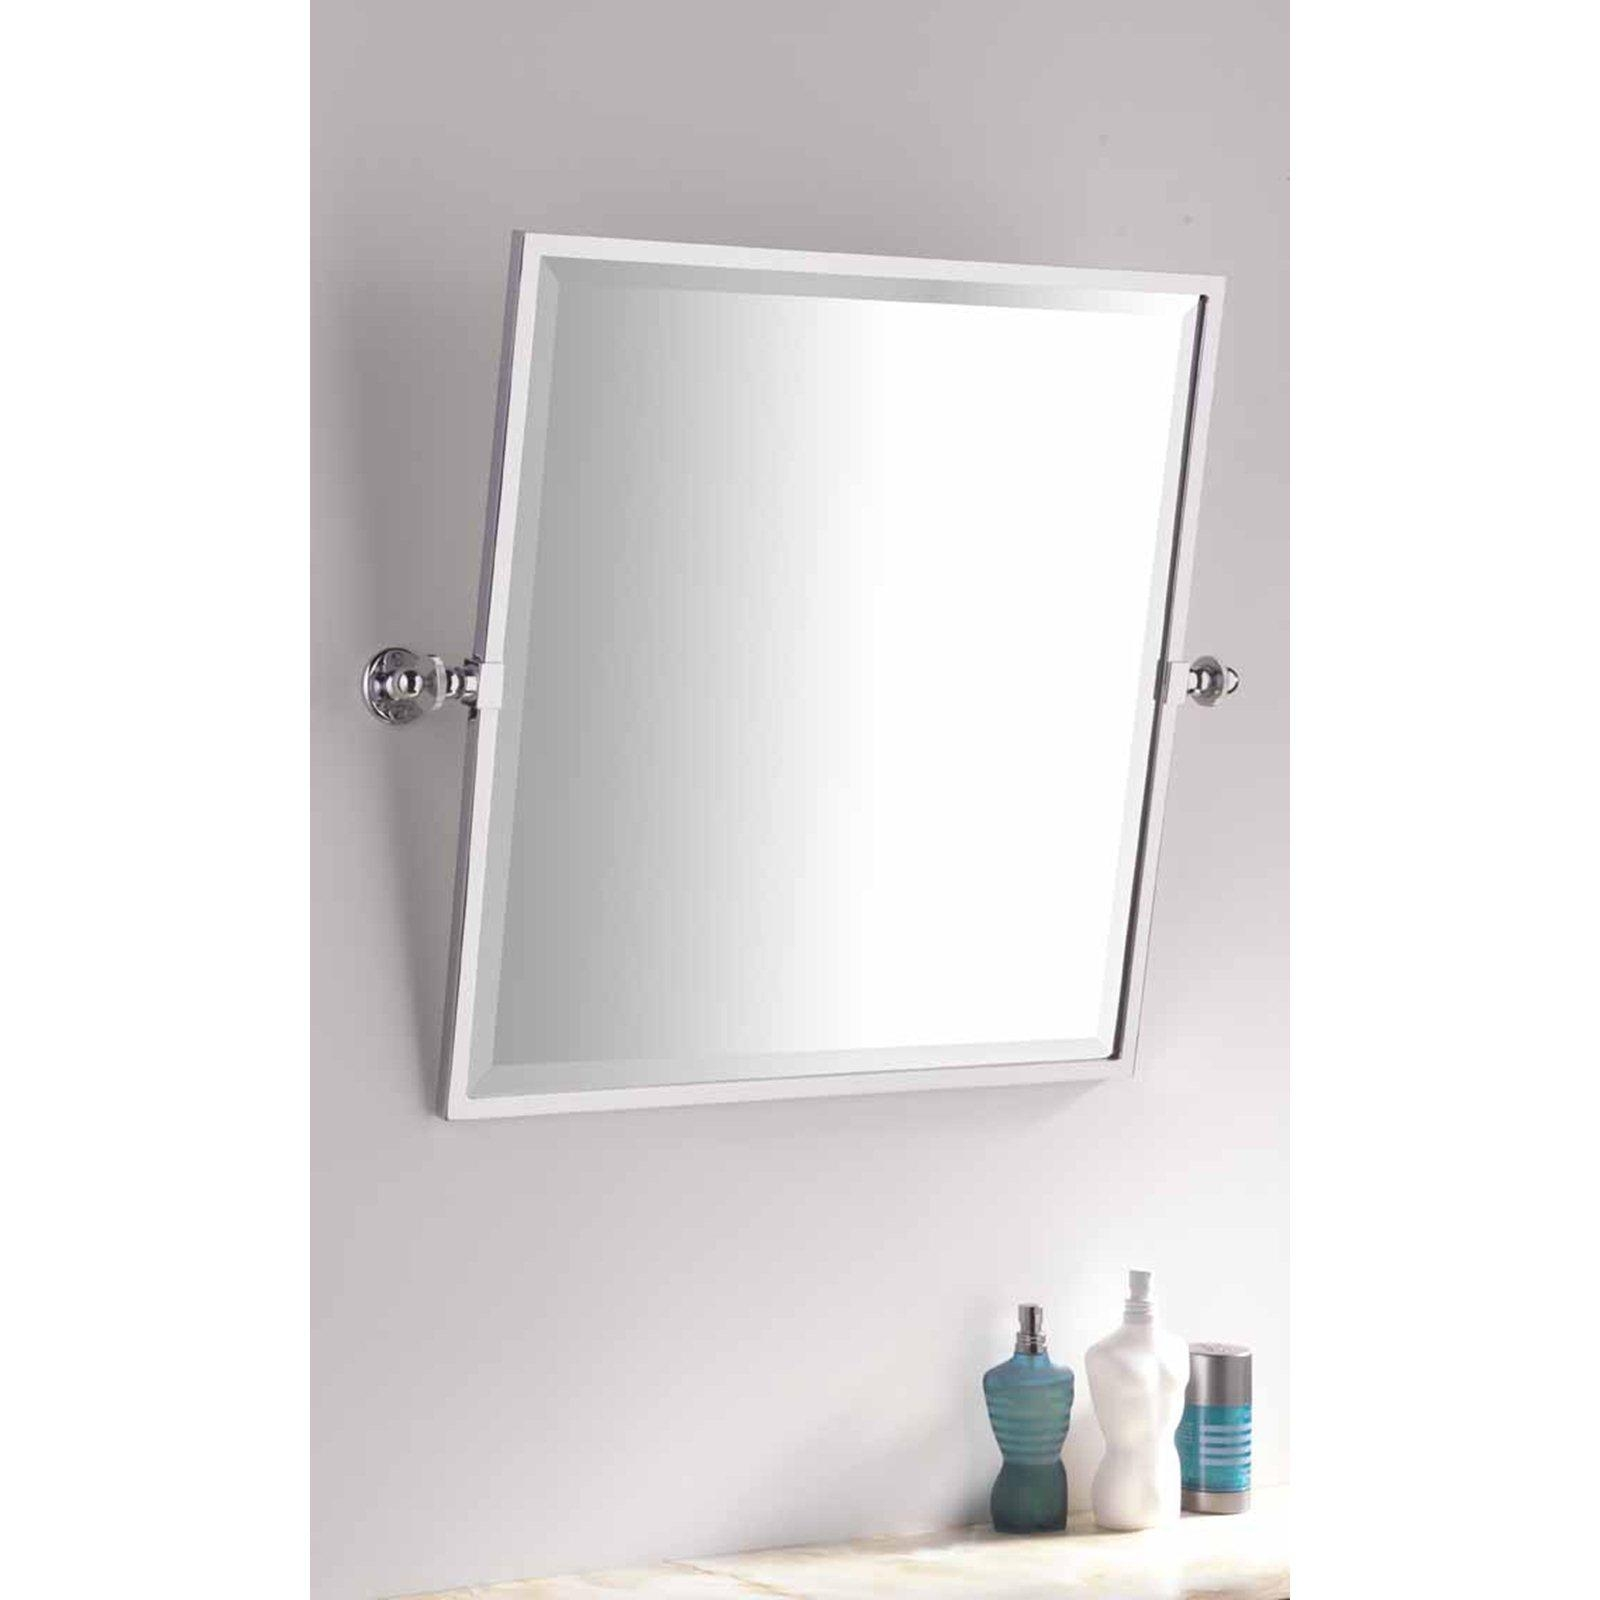 Bathroom : New Pivot Bathroom Mirrors Room Ideas Renovation With Adjustable Bathroom Mirrors (View 10 of 20)